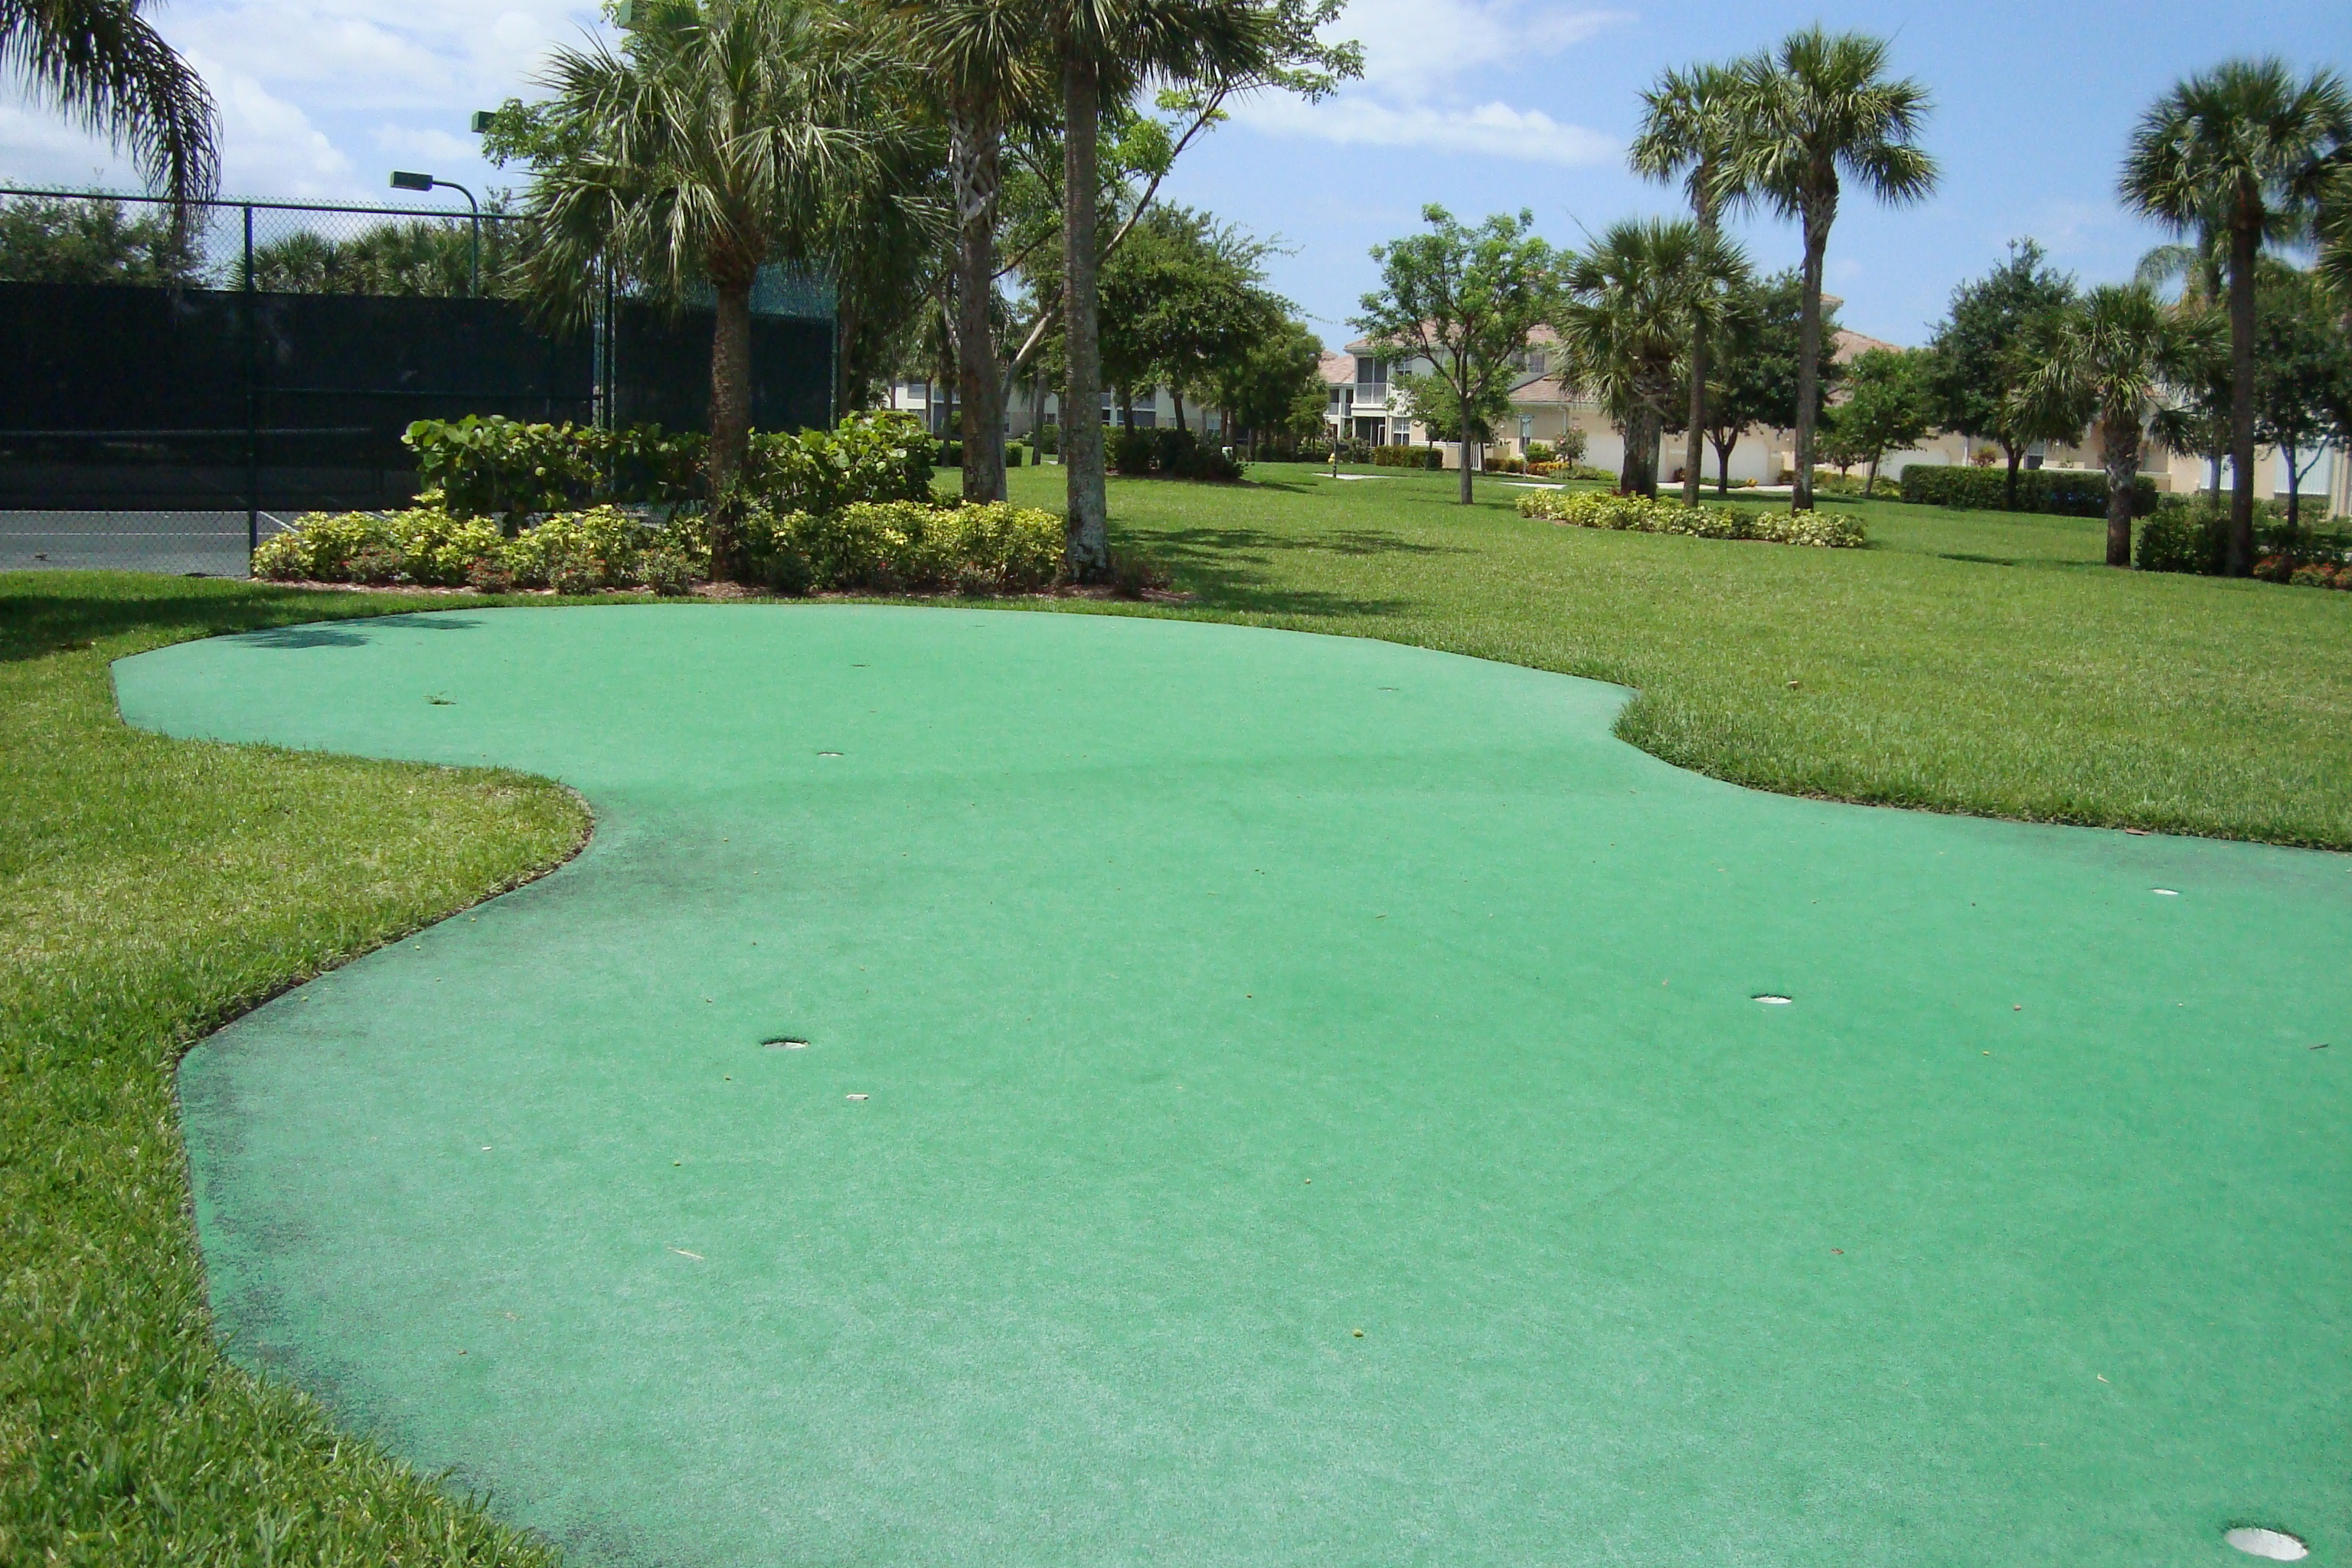 Putting green at Bridgewater Bay in Naples, Florida.